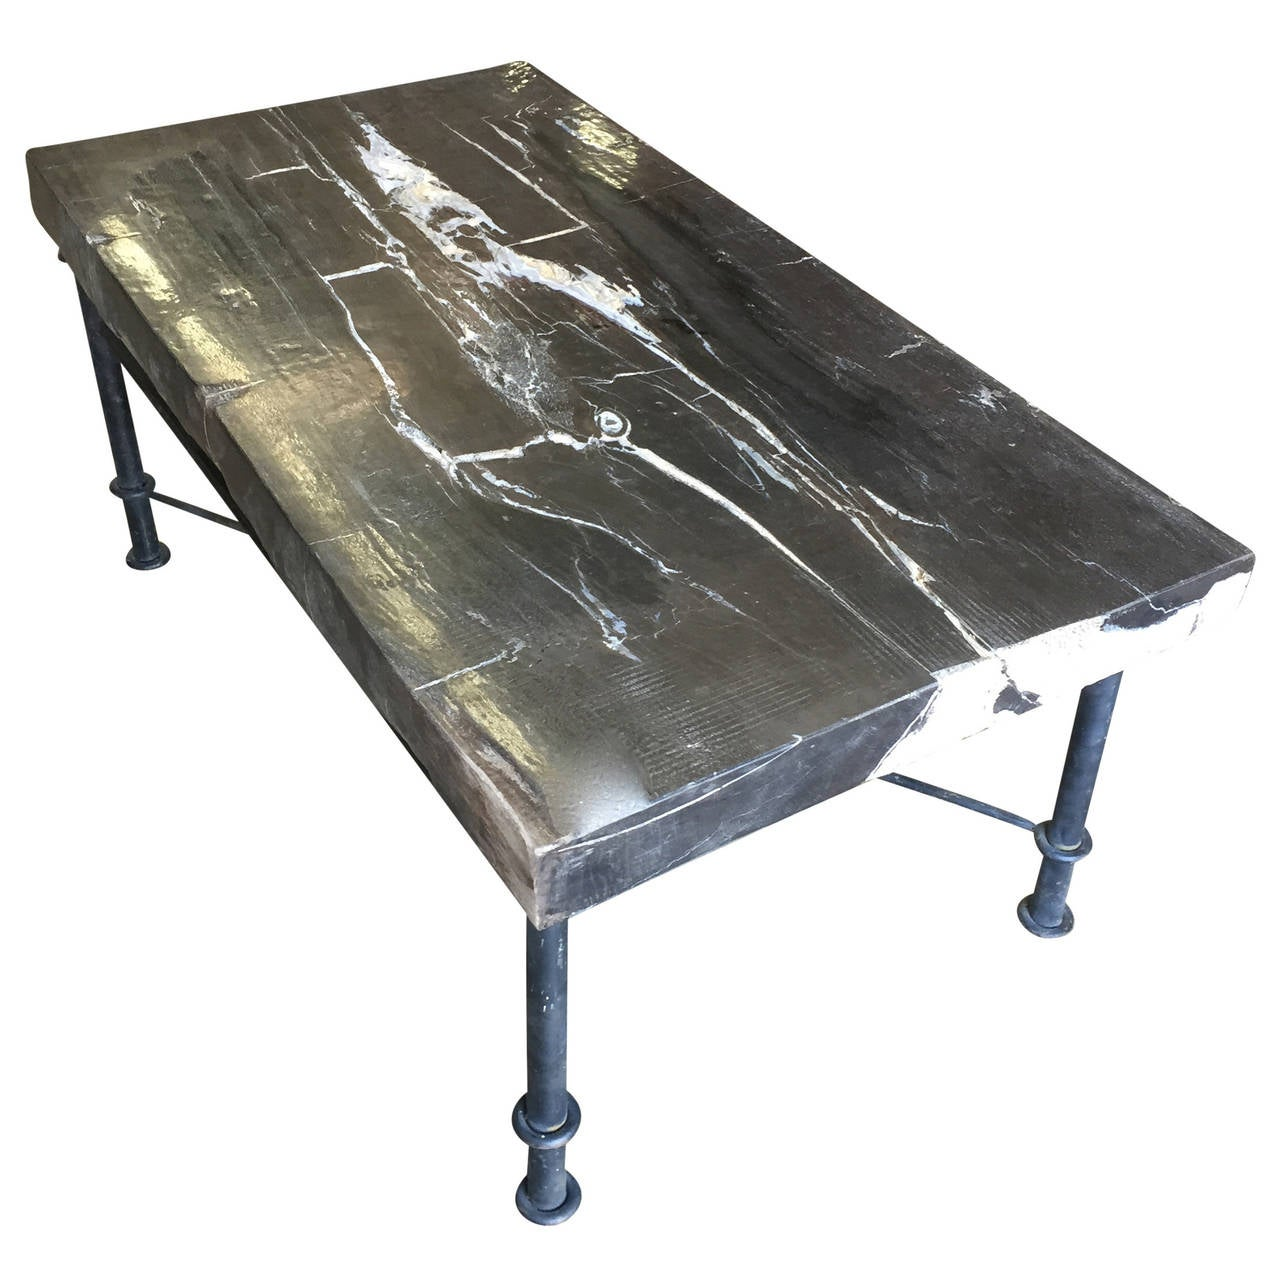 Petrified wood slab coffee table with iron base at 1stdibs for Wood slab coffee table